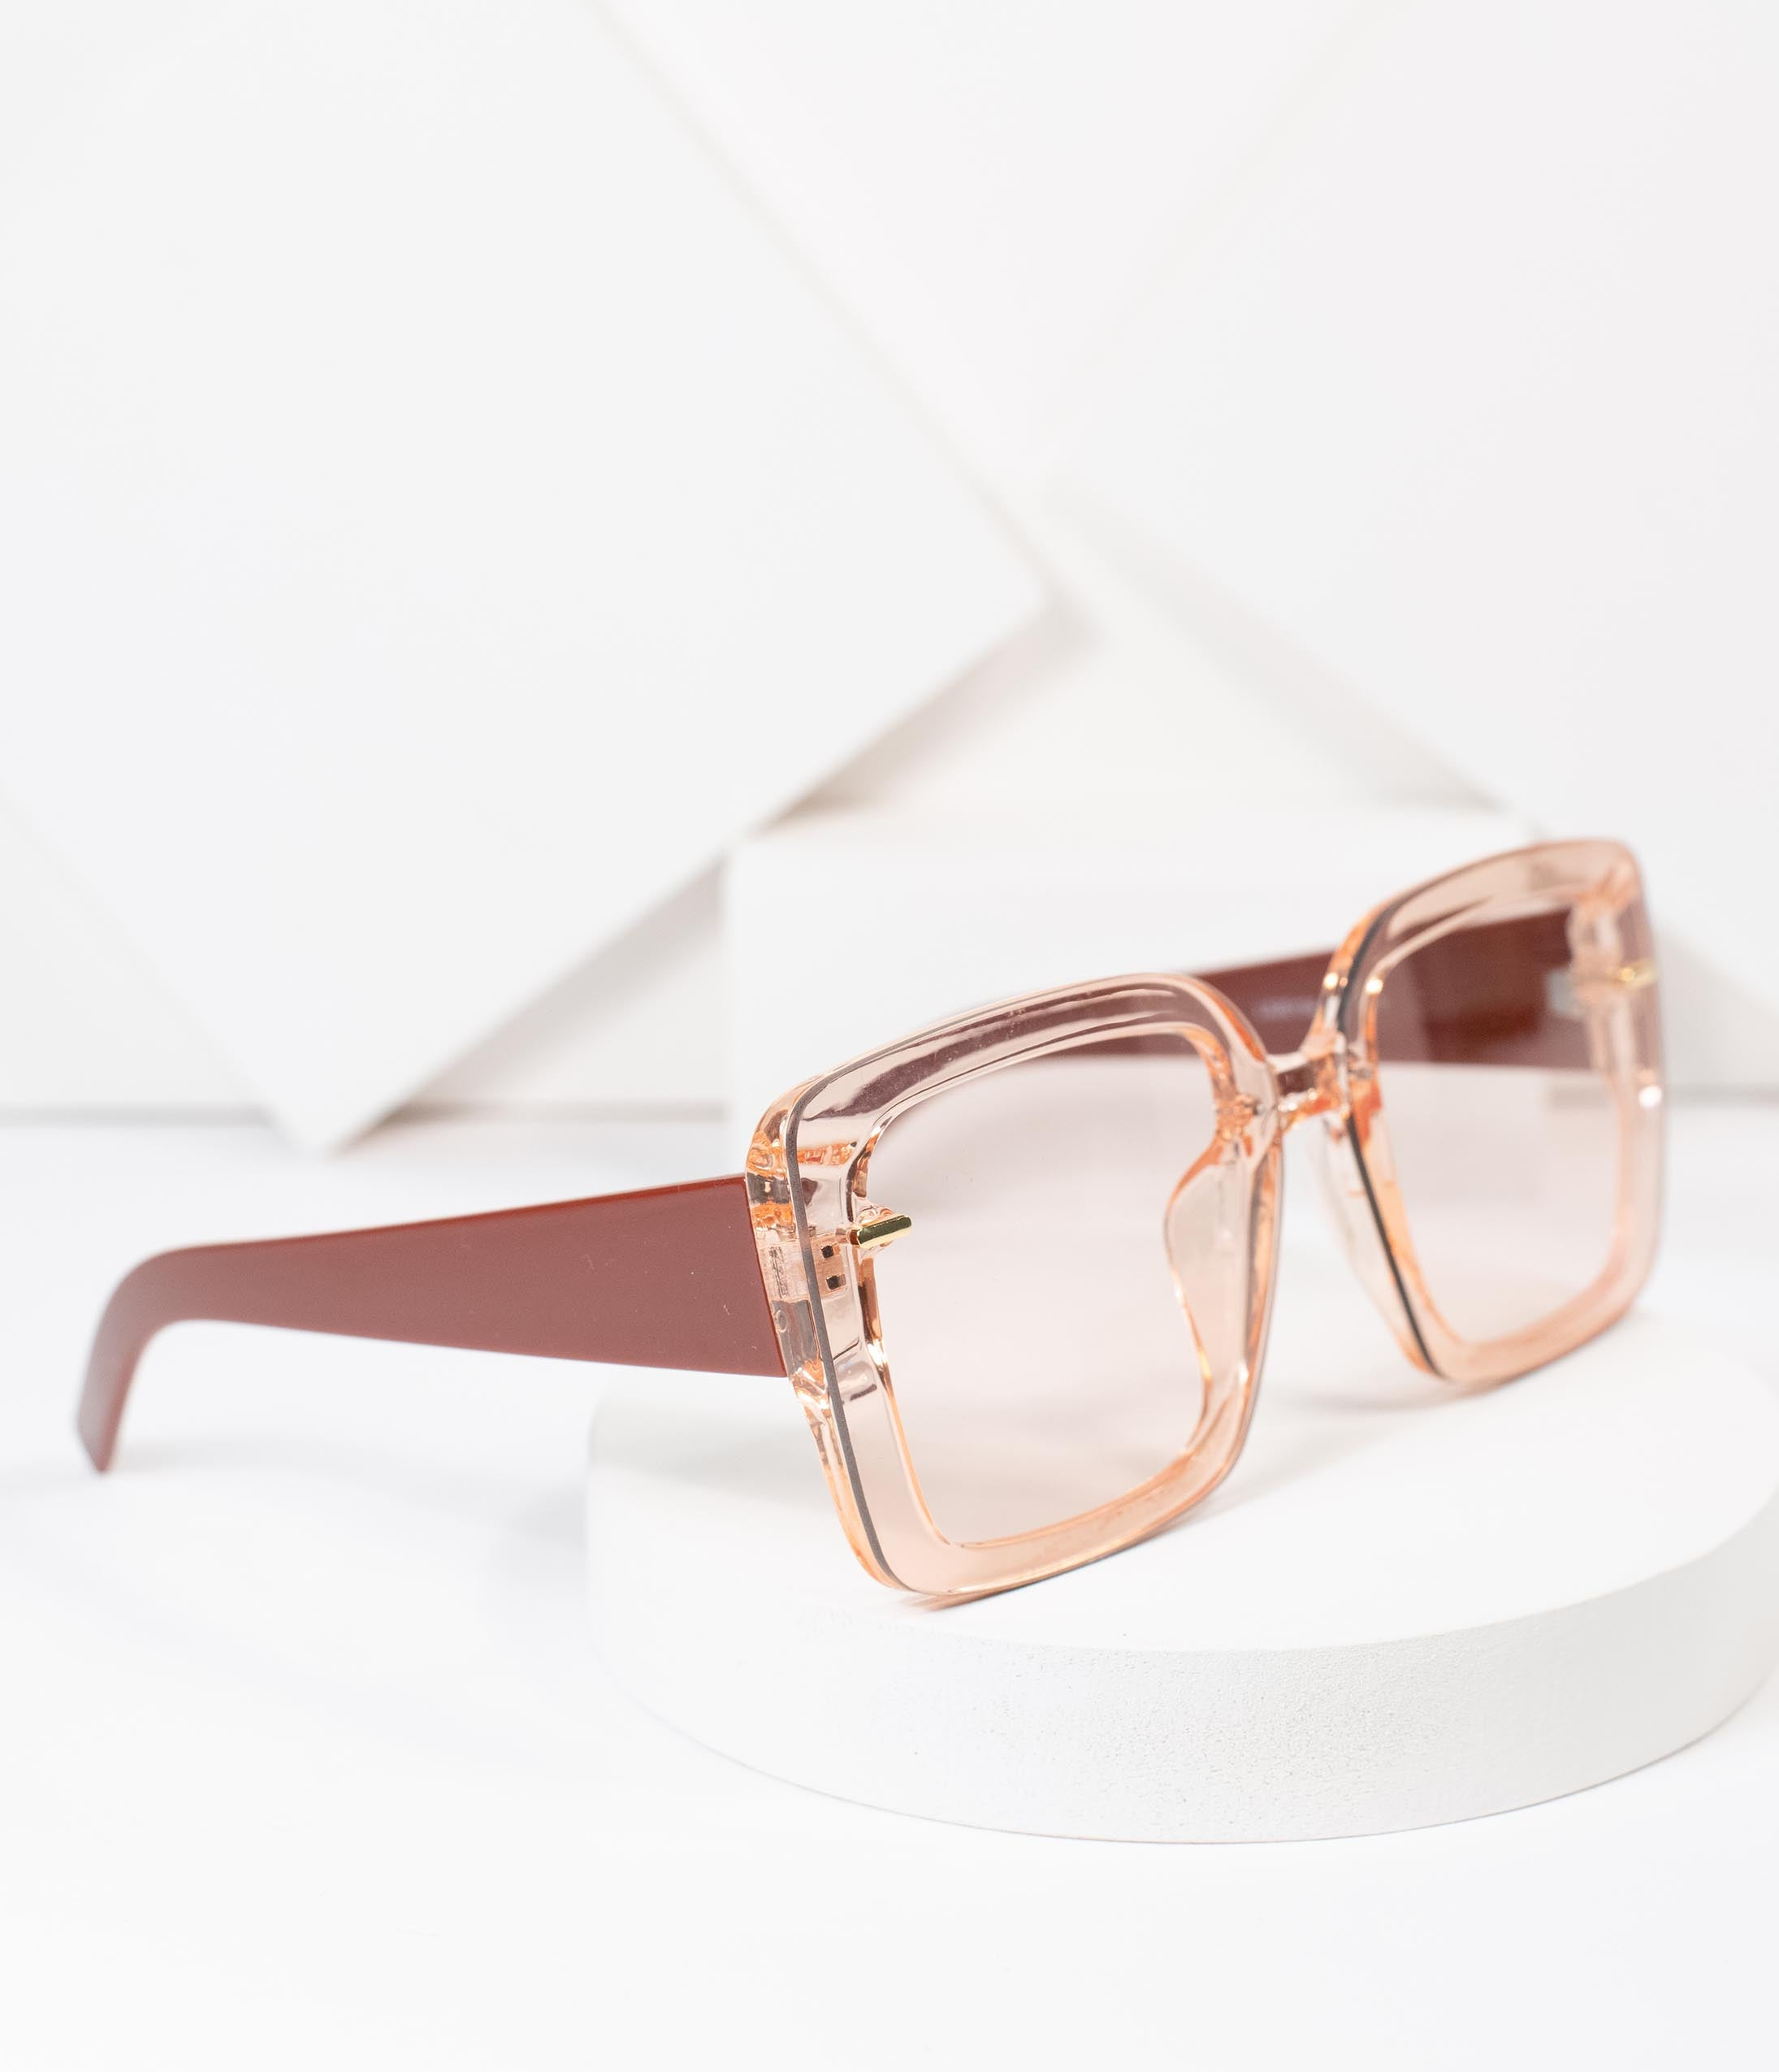 70s Clothes | Hippie Clothes & Outfits 1970S Style Pink Square Sunglasses $24.00 AT vintagedancer.com